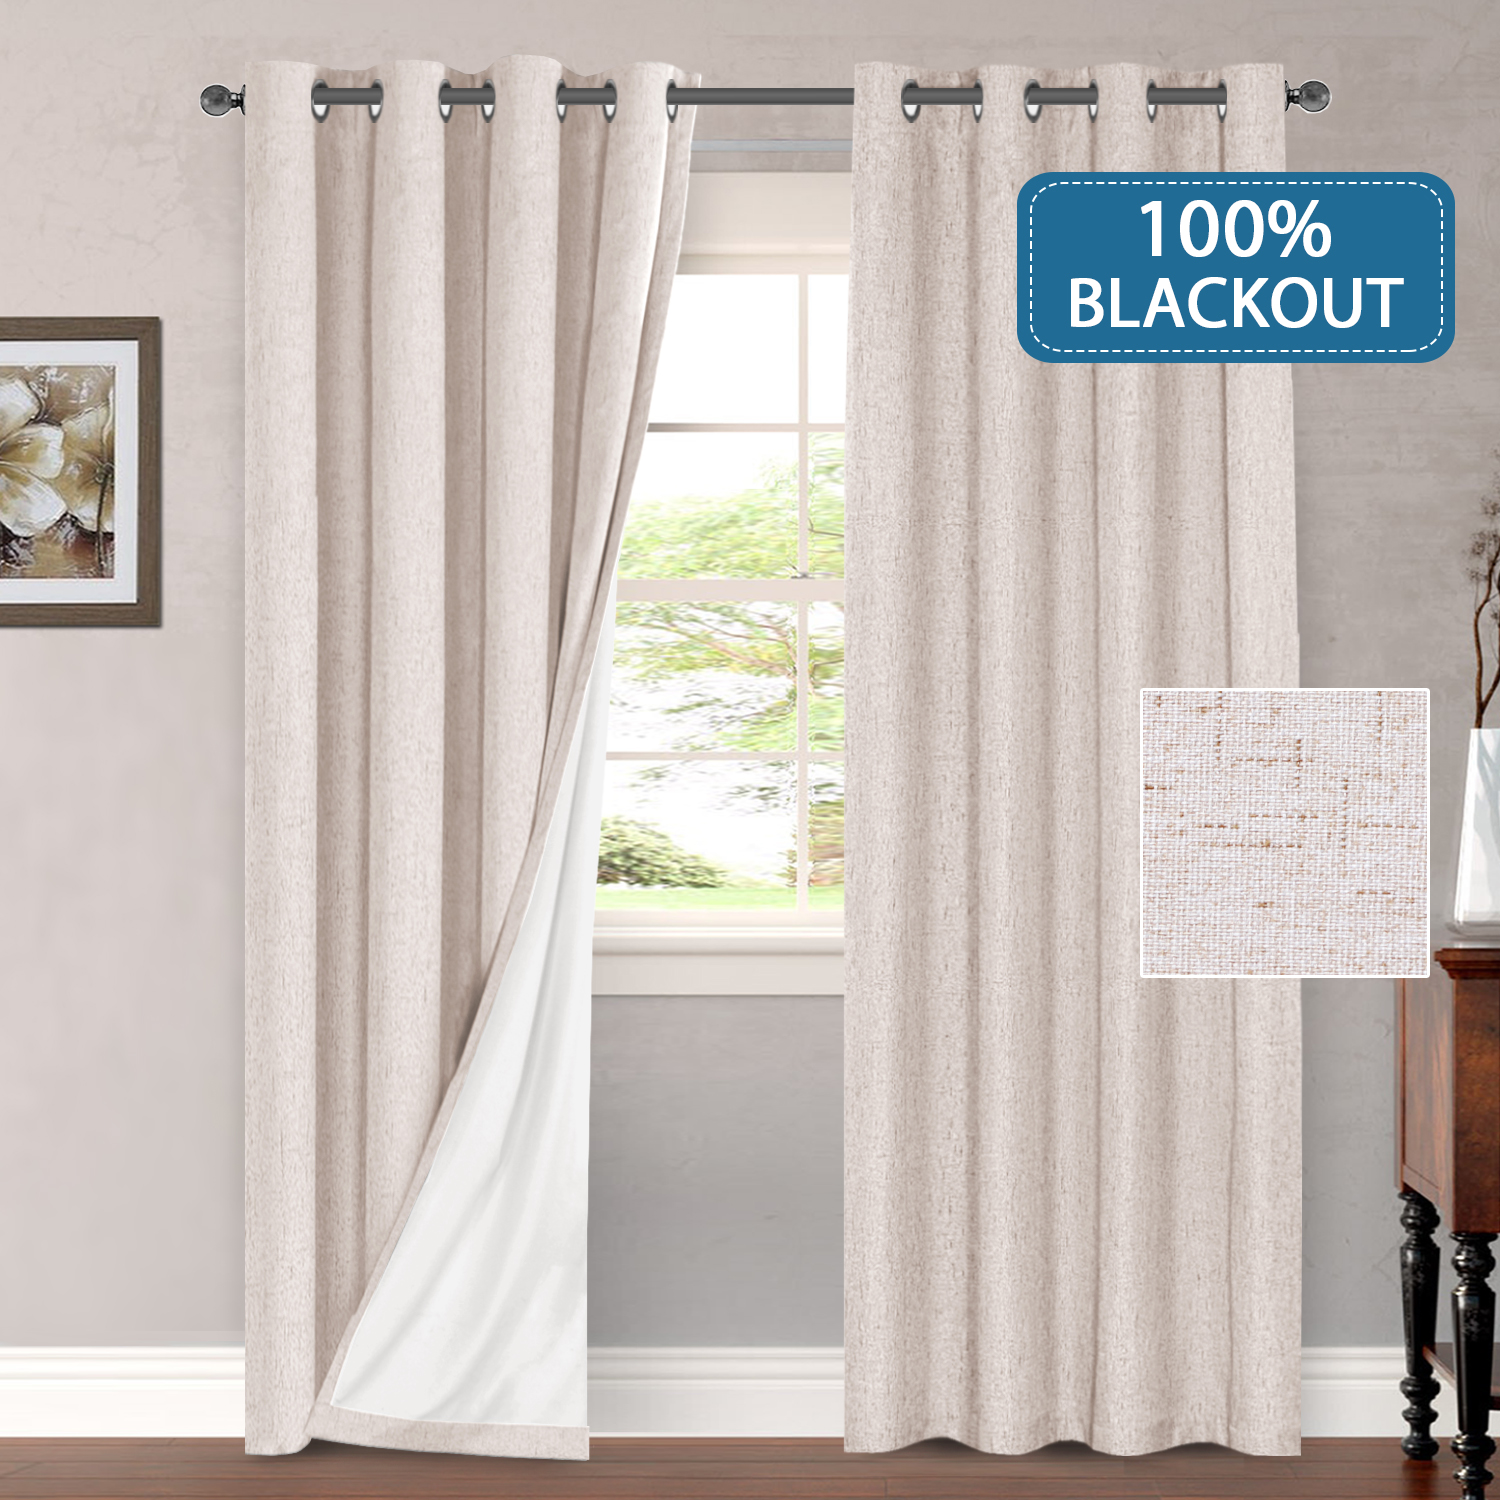 Outdoor Curtains 100 Blackout Draperies For Patio Waterproof Linen Look Blackout Curtains For Bedroom Extra Long 108 Inches Grommets Window Curtain Panels Natural Color 2 Panels Walmart Com Walmart Com